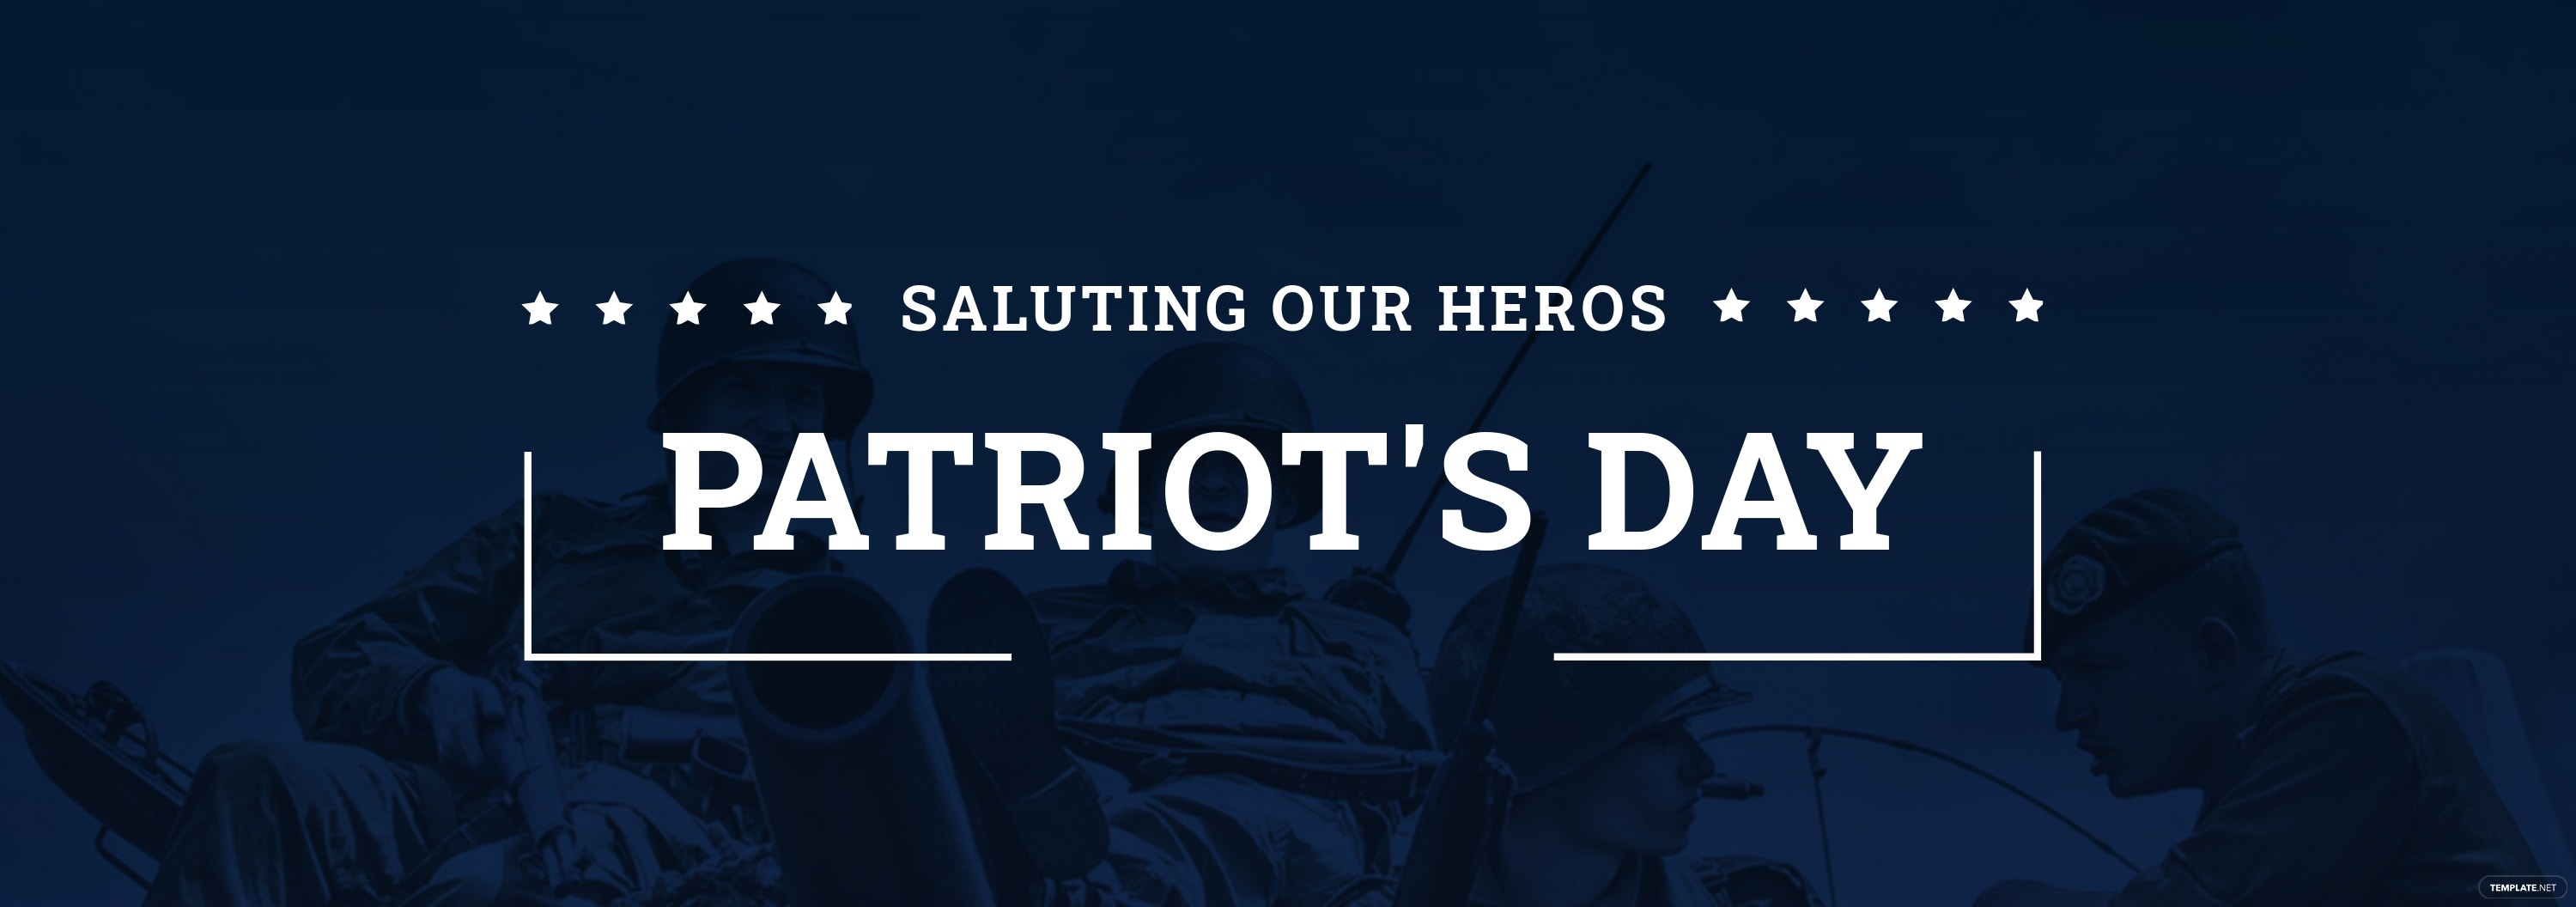 Patriot's Day Tumblr Banner Template